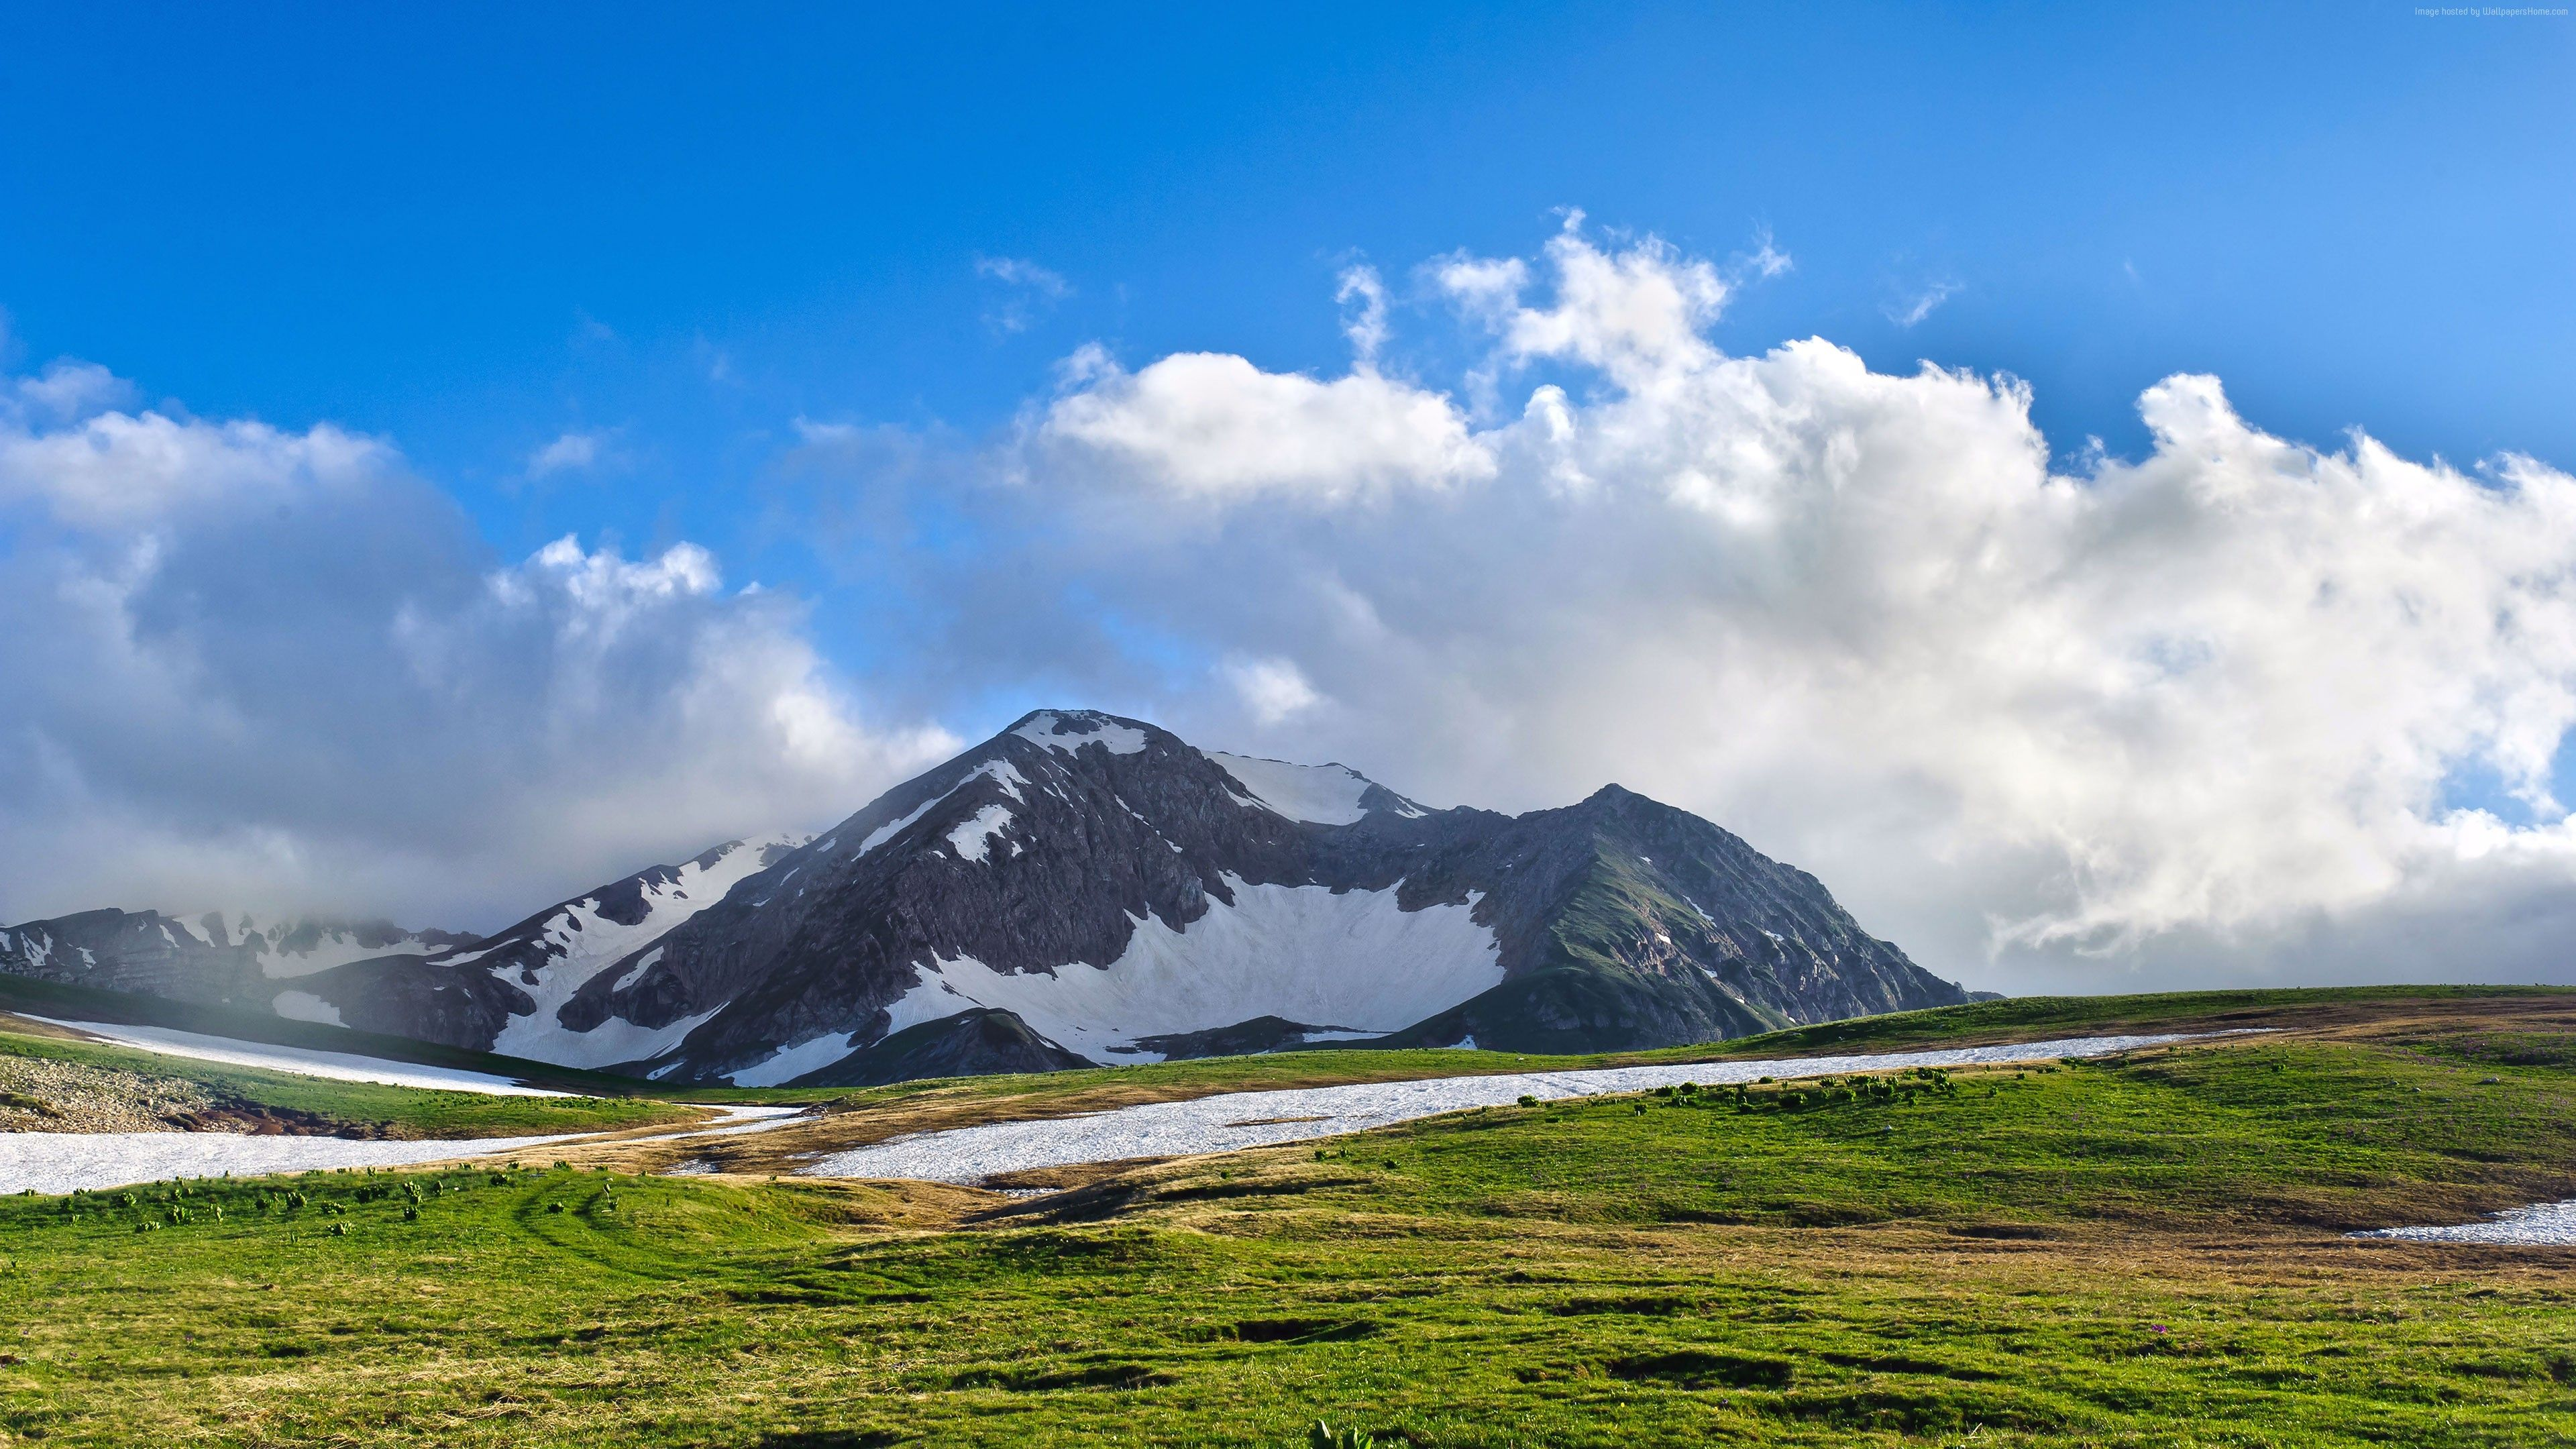 Japanese Mountains Wallpapers Top Free Japanese Mountains Images, Photos, Reviews